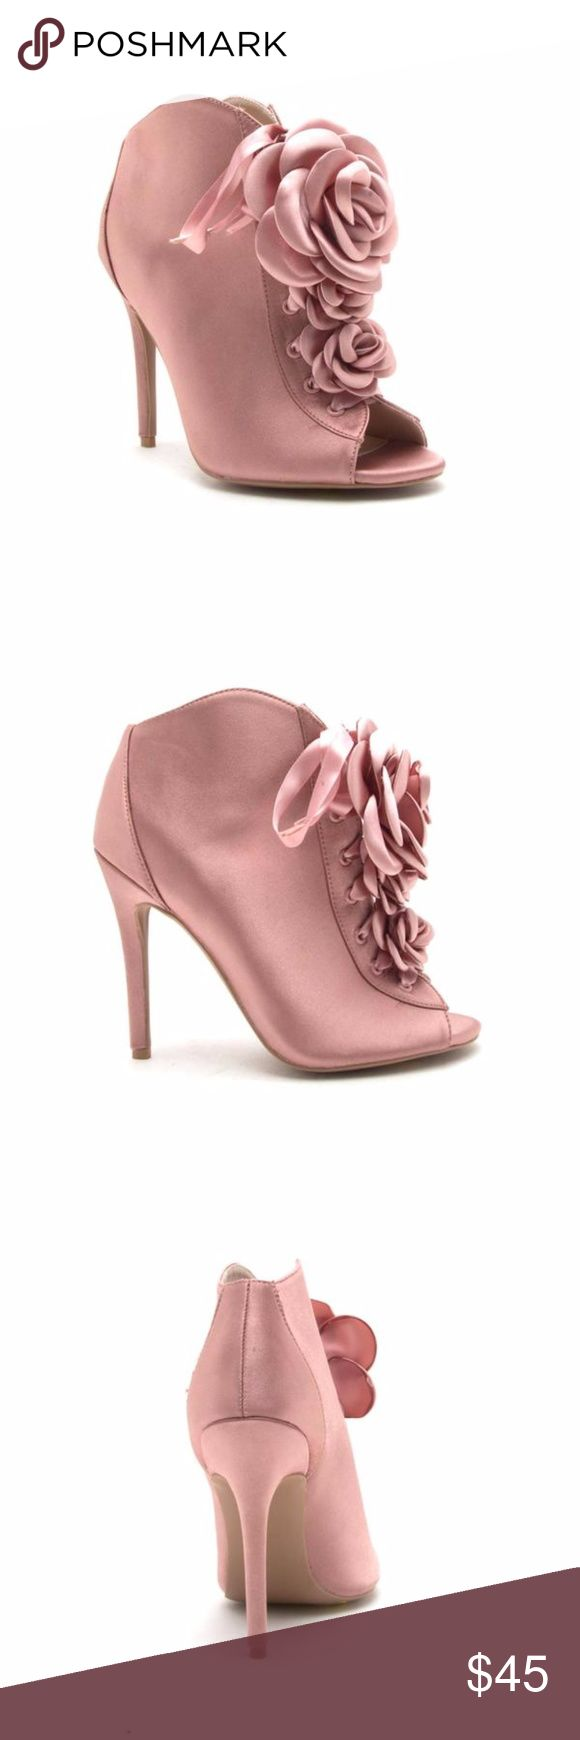 ARA-382 MAUVE SATIN Get just in time for the holidays! Share to your friends and family Great Quality 4 inch heels. Shoes Ankle Boots & Booties